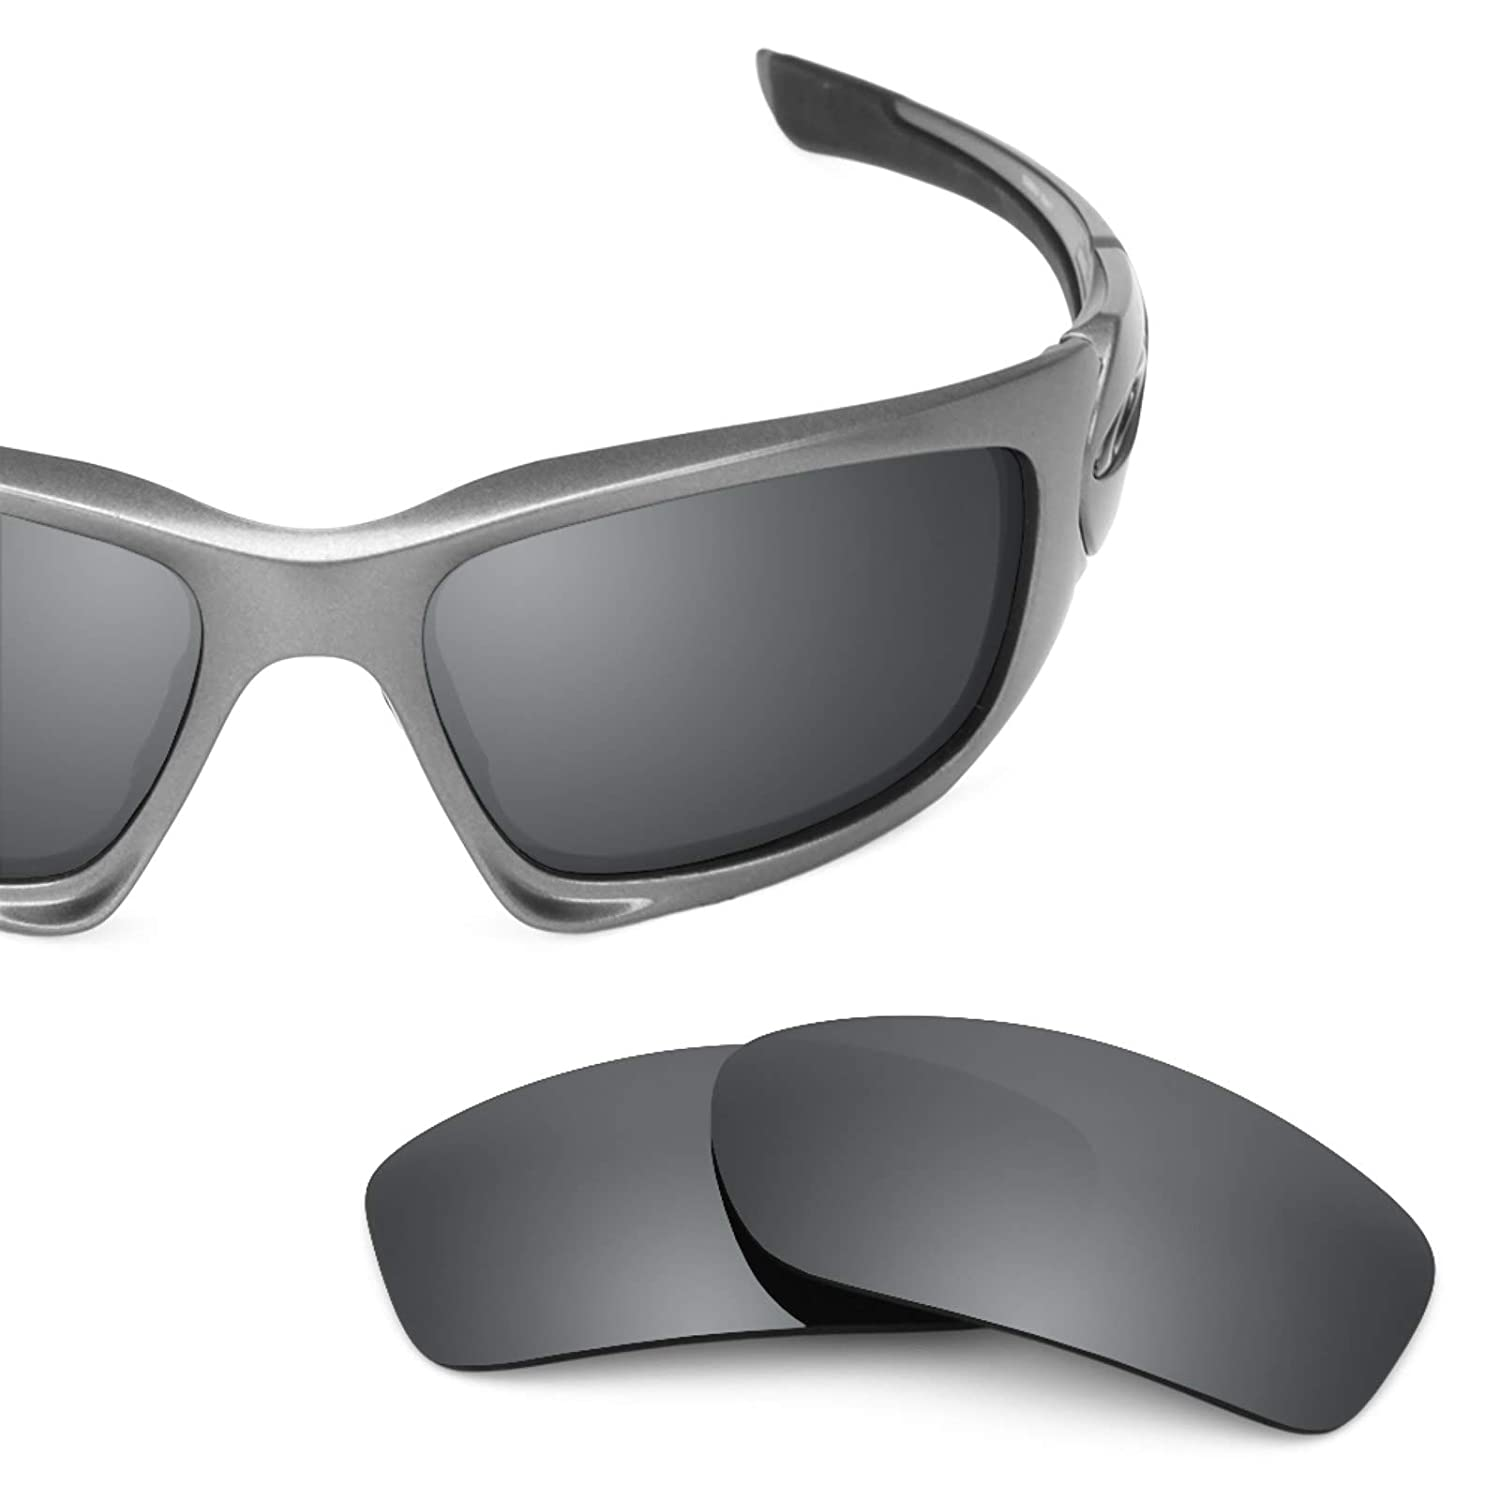 d8caba6688be7 Amazon.com  Revant Polarized Replacement Lenses for Oakley Scalpel (Asian  Fit) Elite Black Chrome MirrorShield  Sports   Outdoors